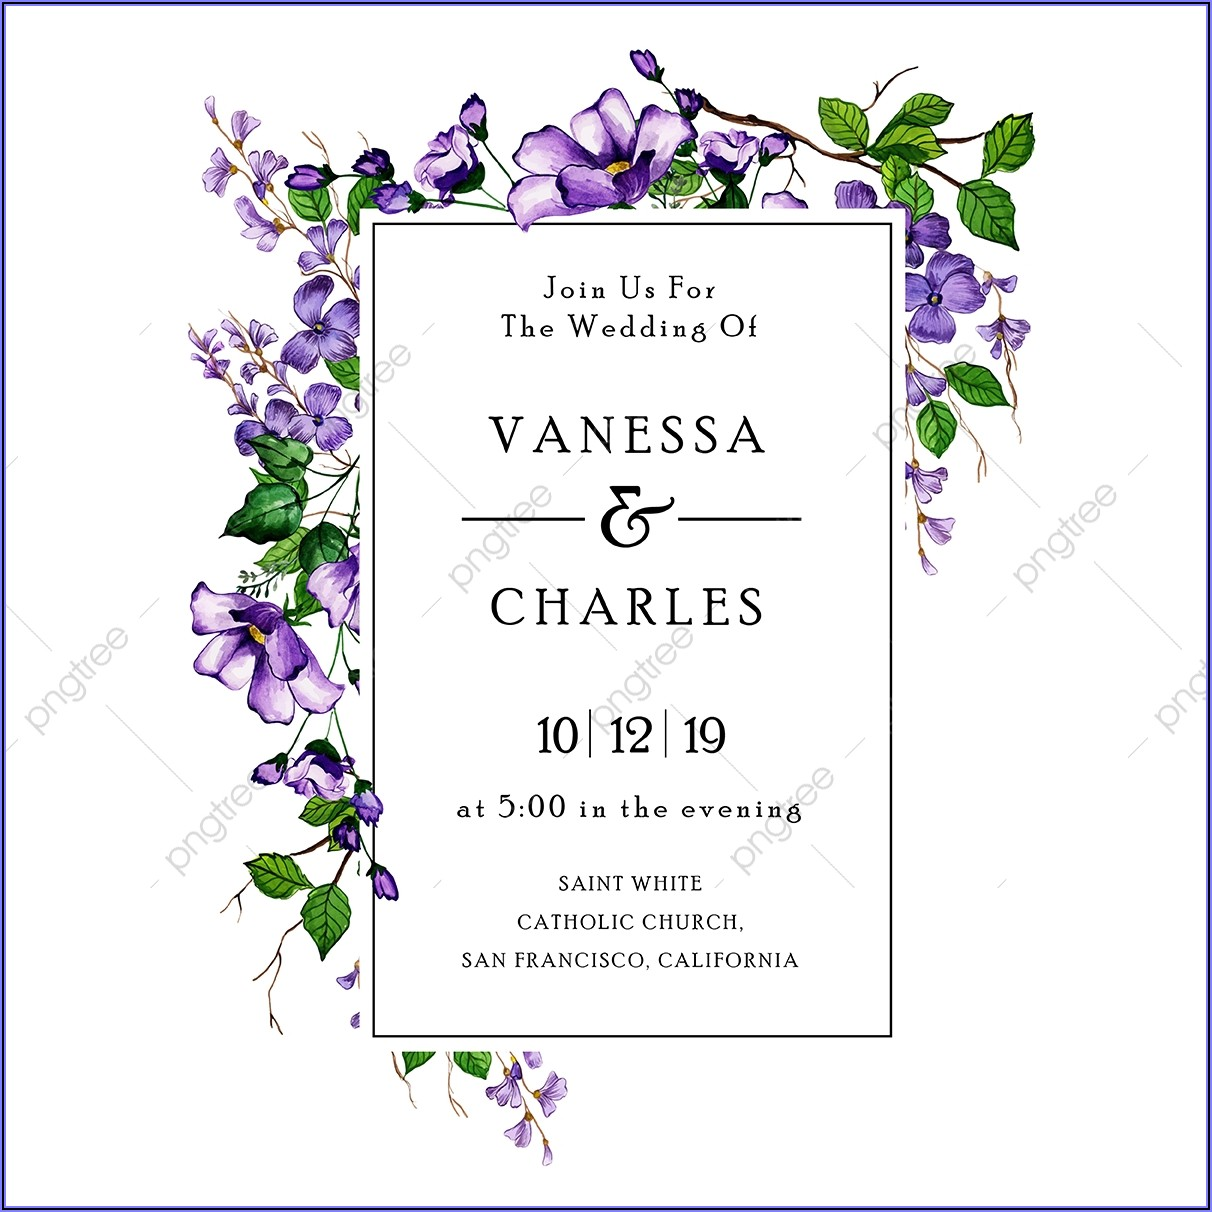 Wedding Invitation Card Background Png